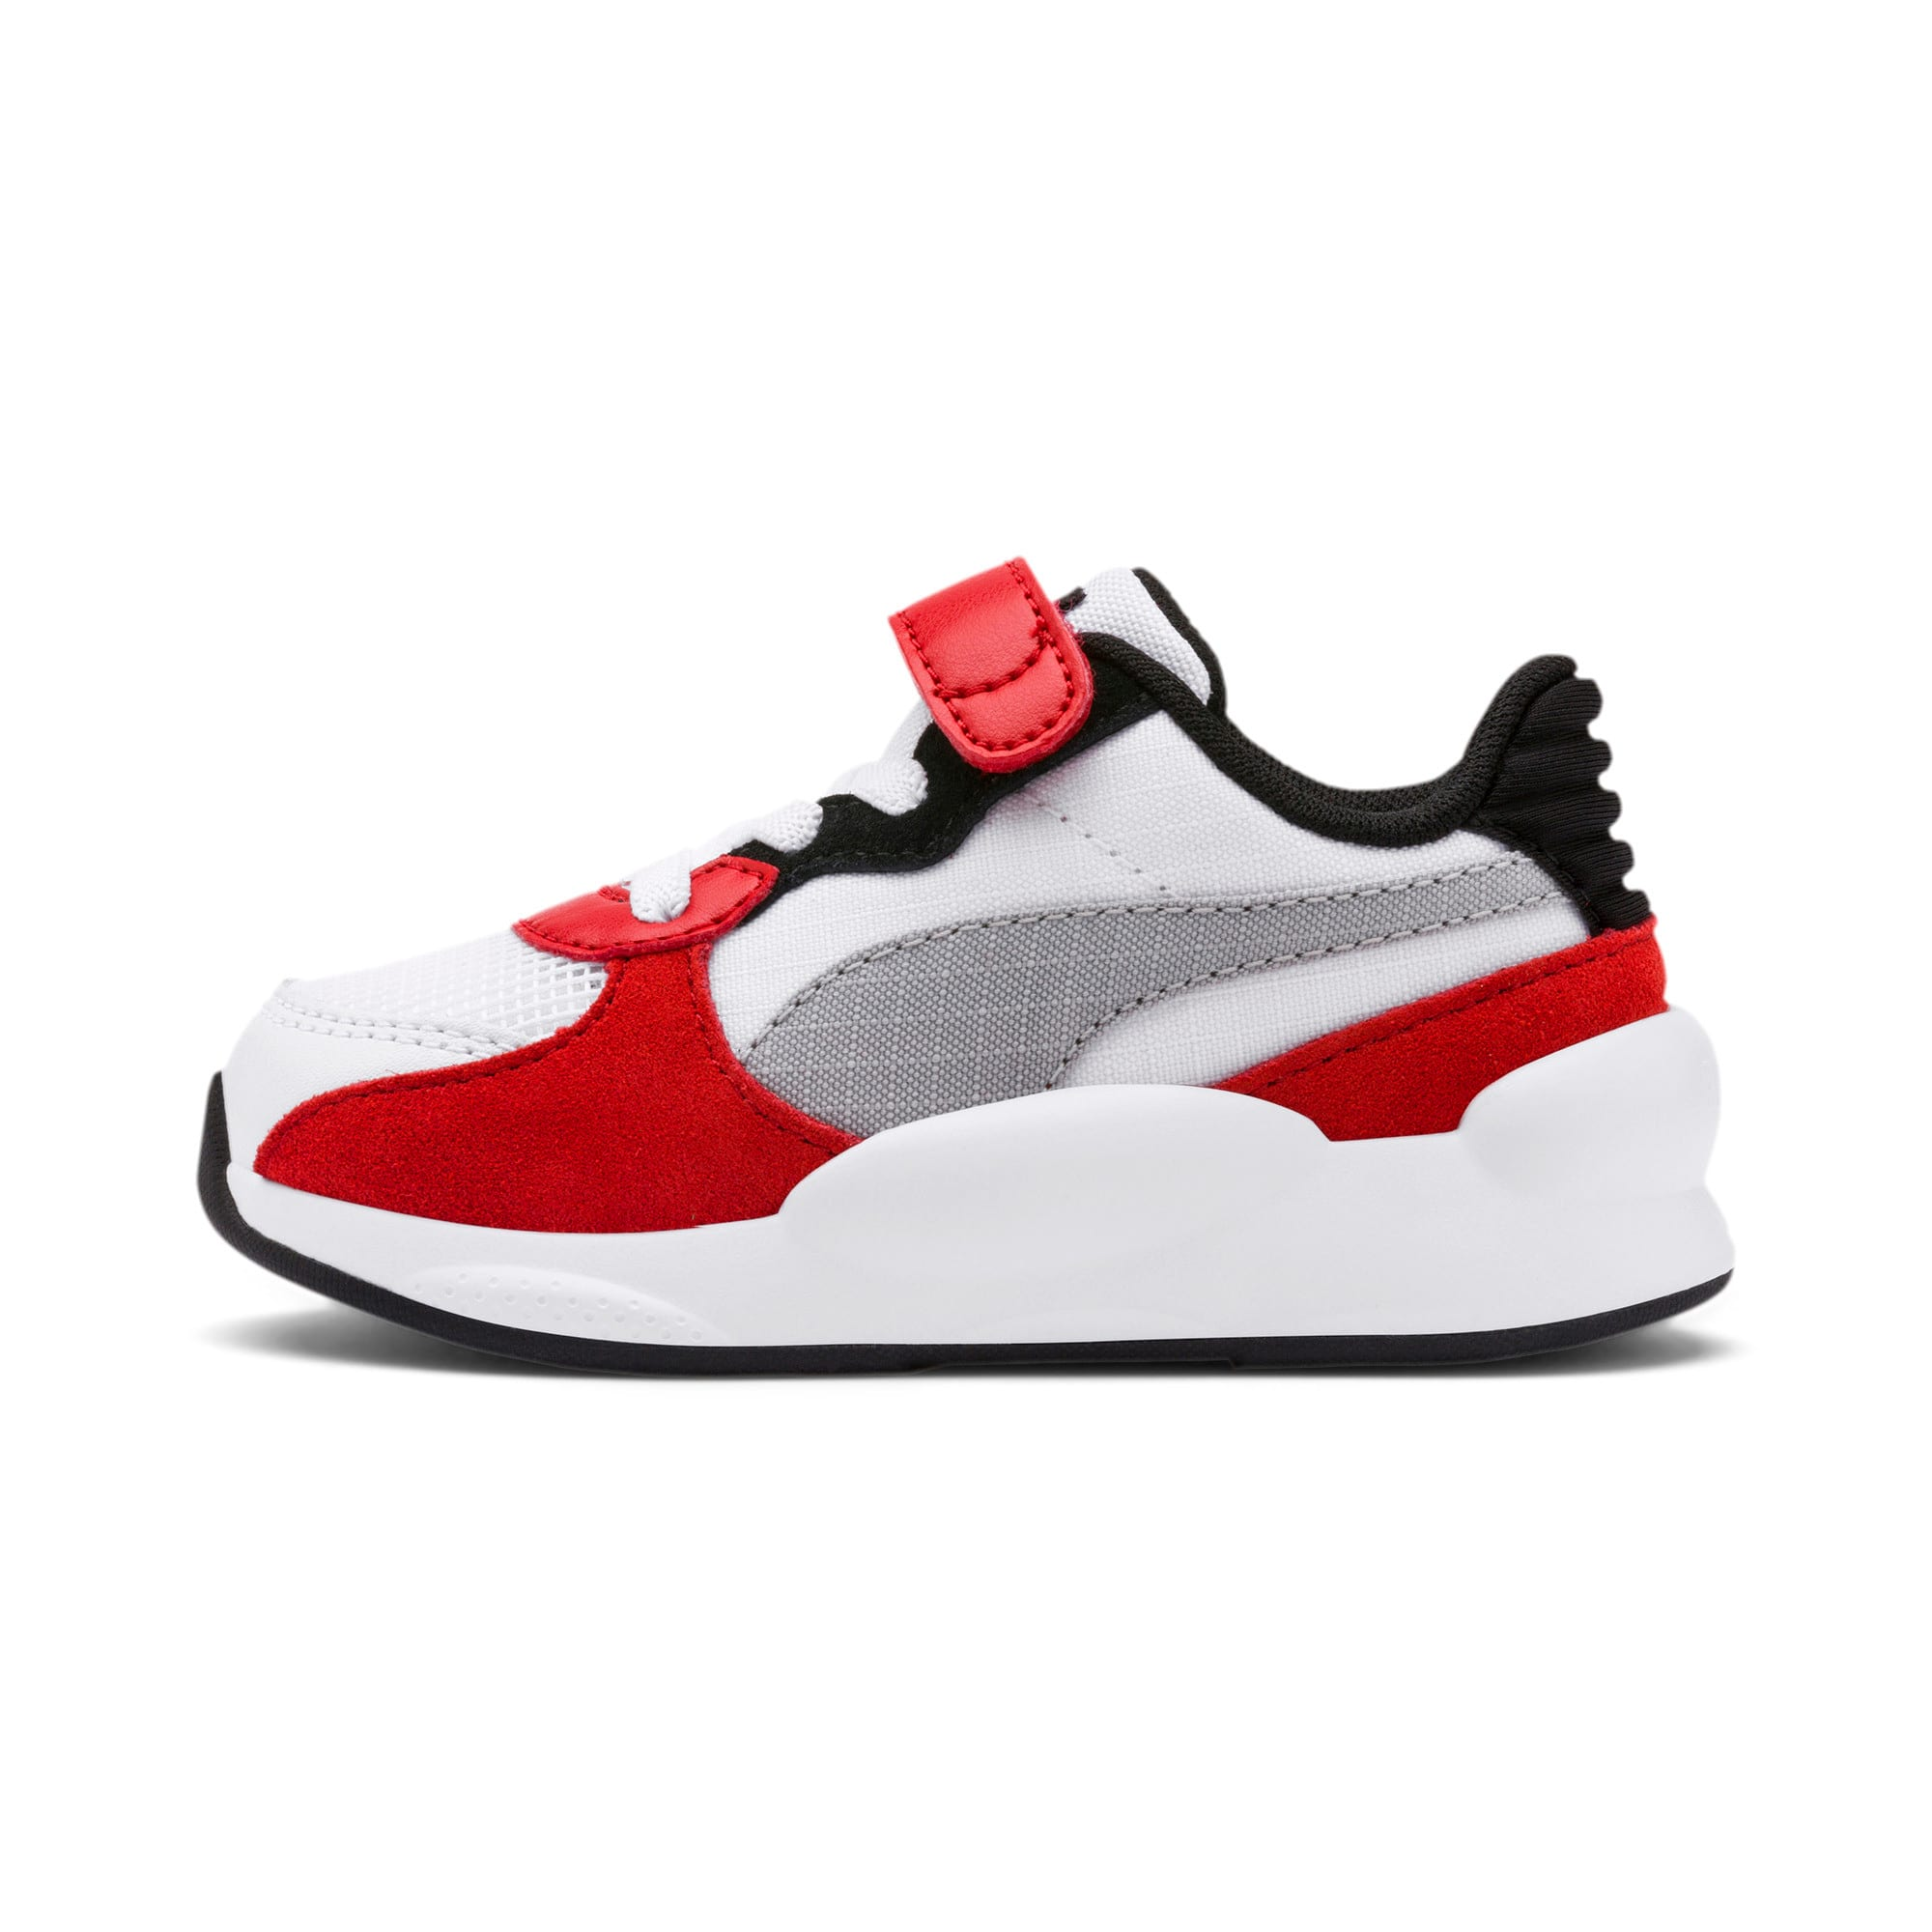 Thumbnail 1 of RS 9.8 Space AC Toddler Shoes, Puma White-High Risk Red, medium